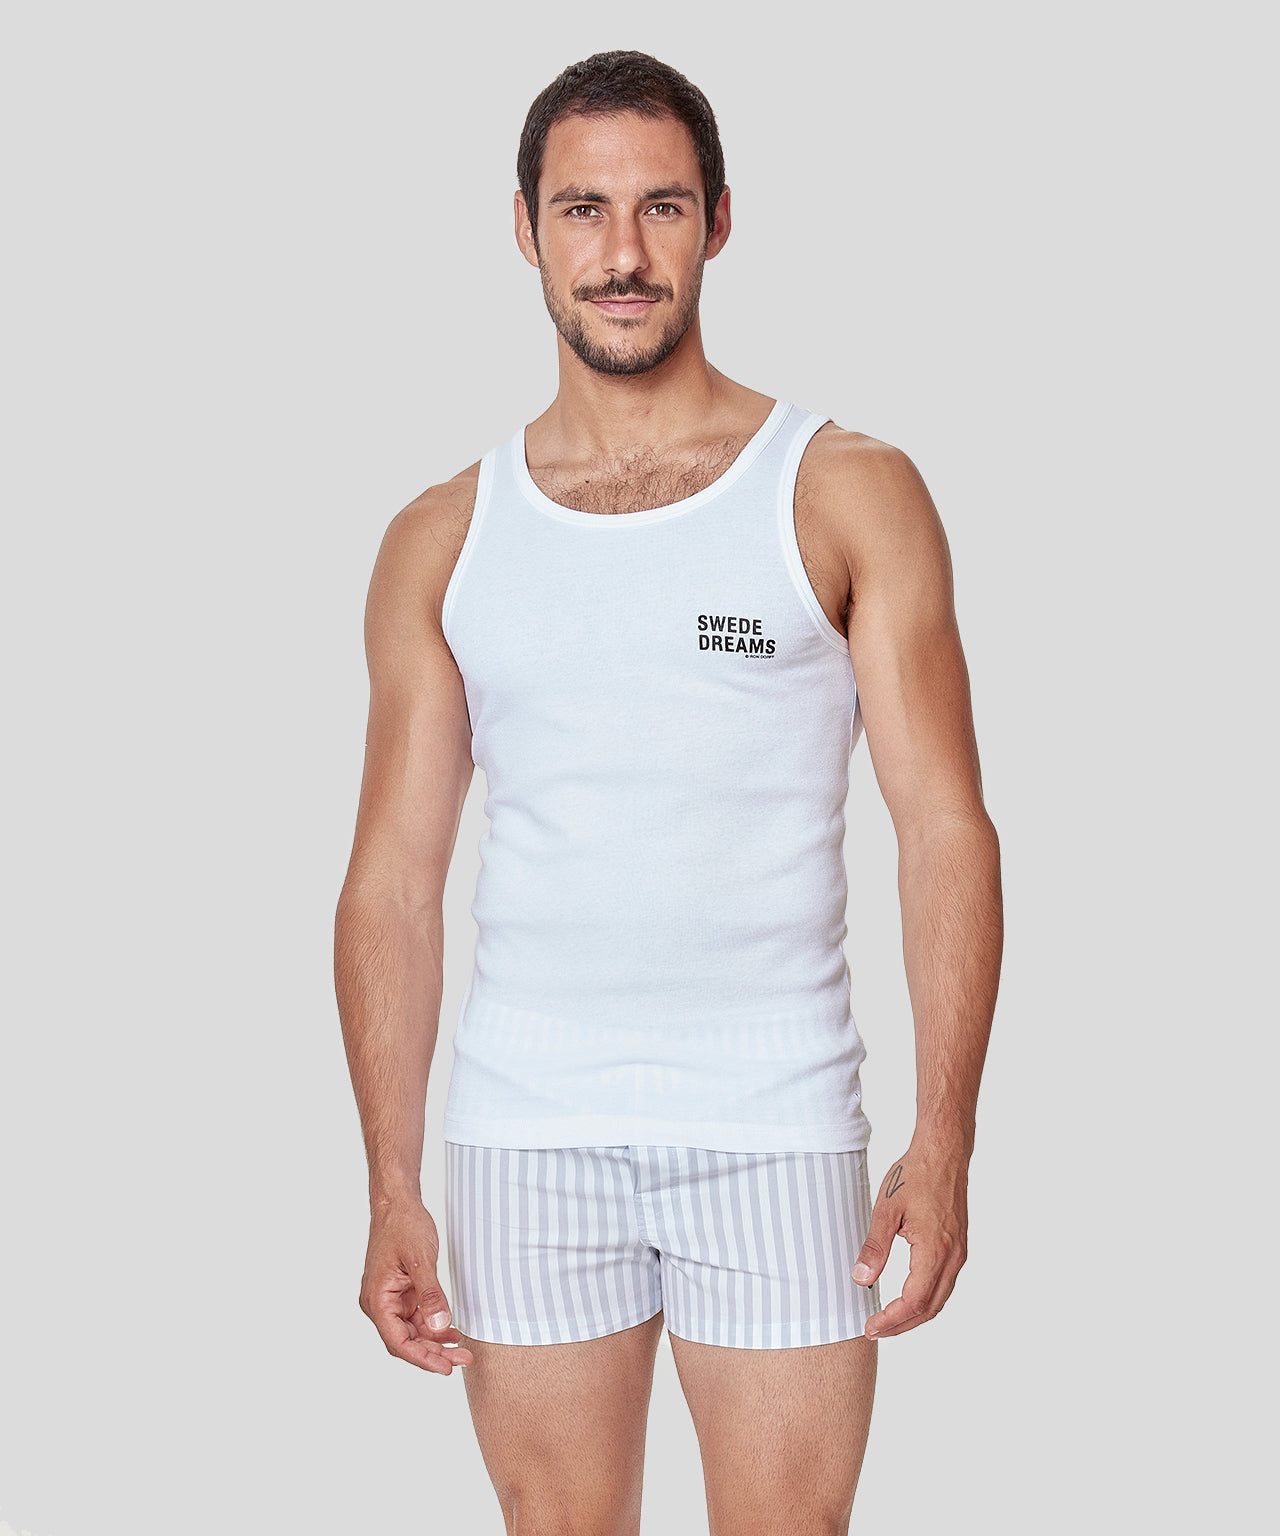 Tank Top SWEDE DREAMS - white